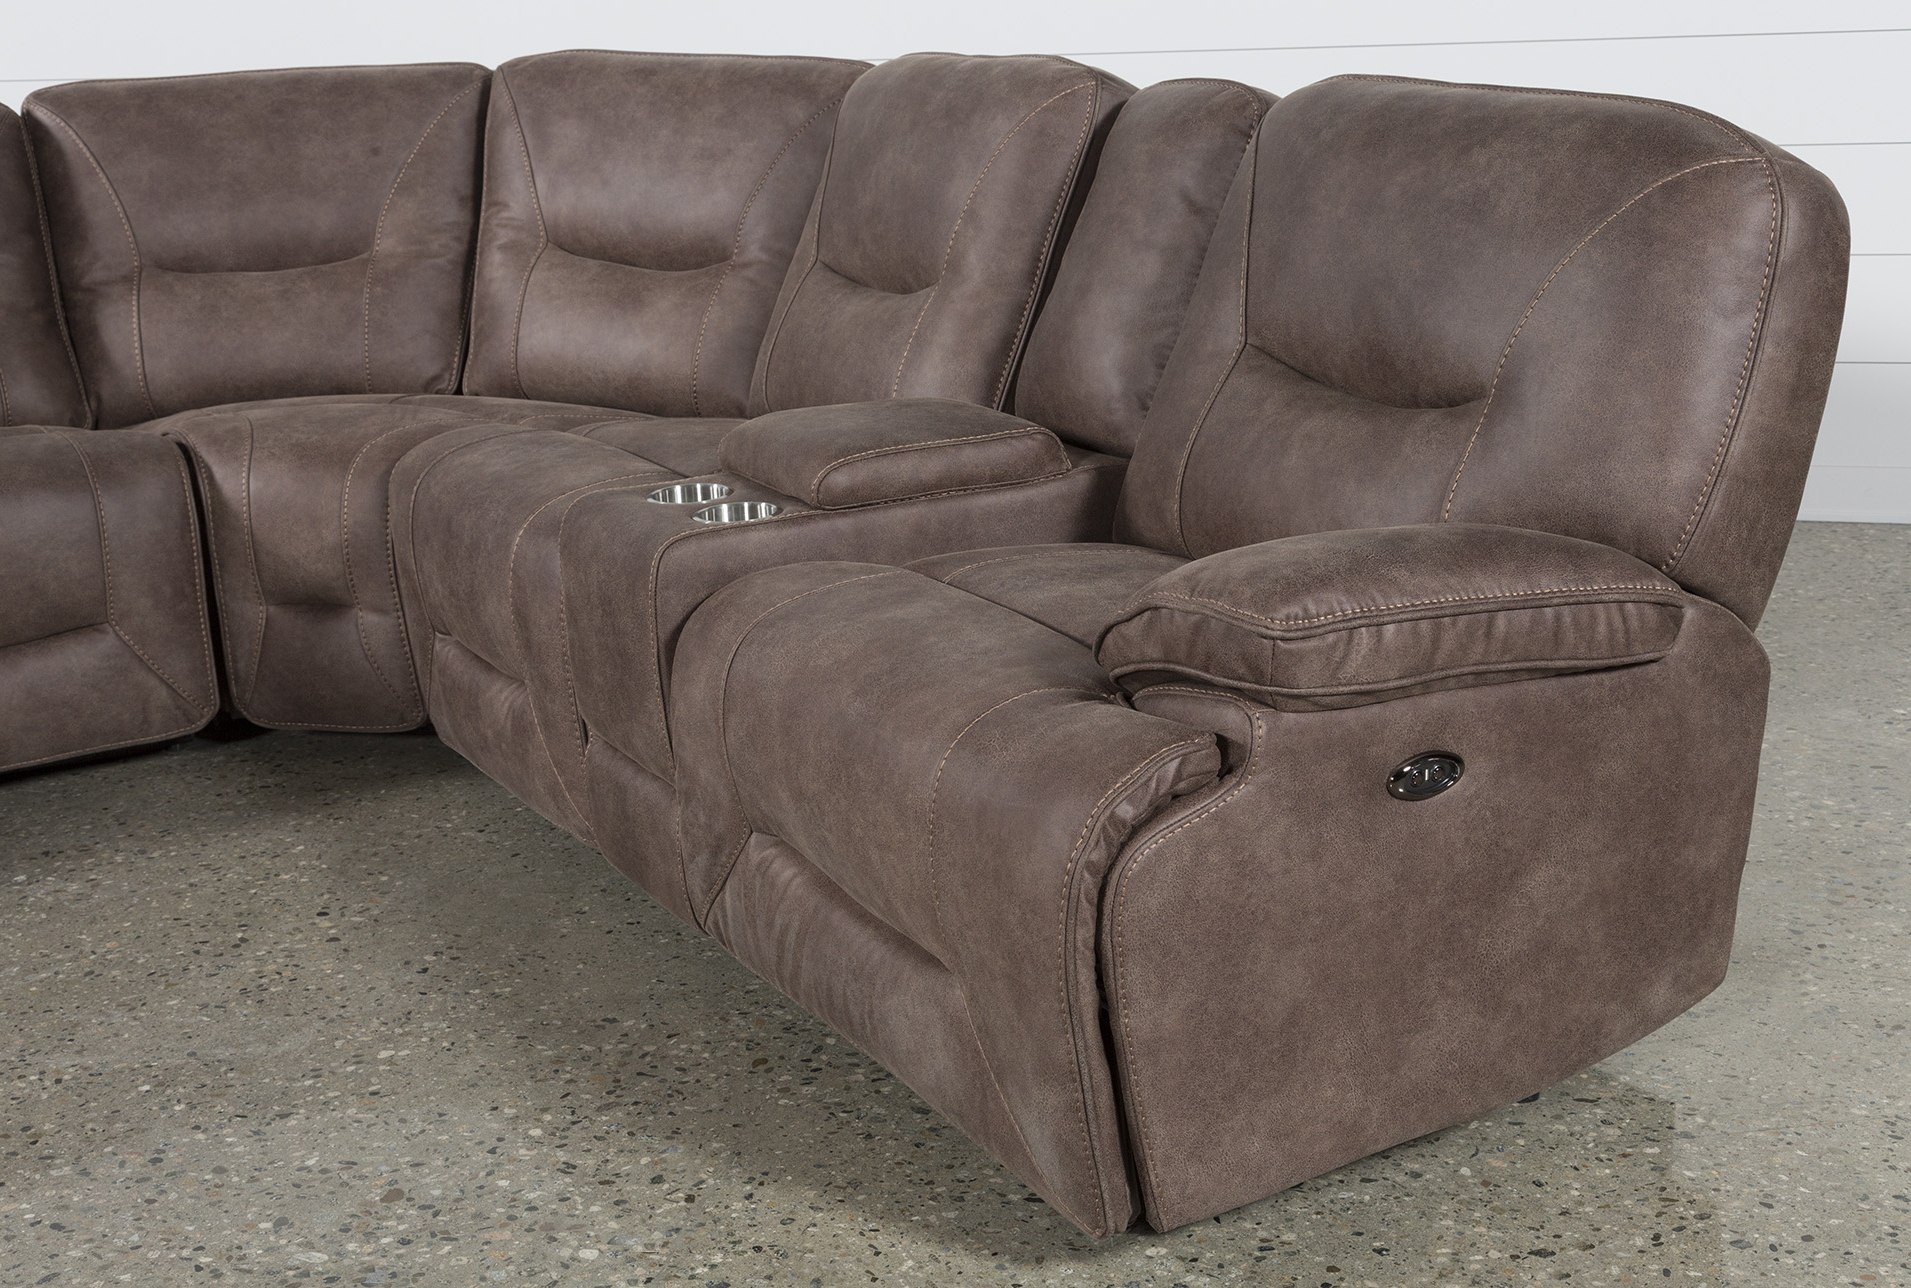 Jackson 6 Piece Power Reclining Sectionals In Favorite Jackson 6 Piece Power Reclining Sectional W/ Sleeper (View 7 of 20)